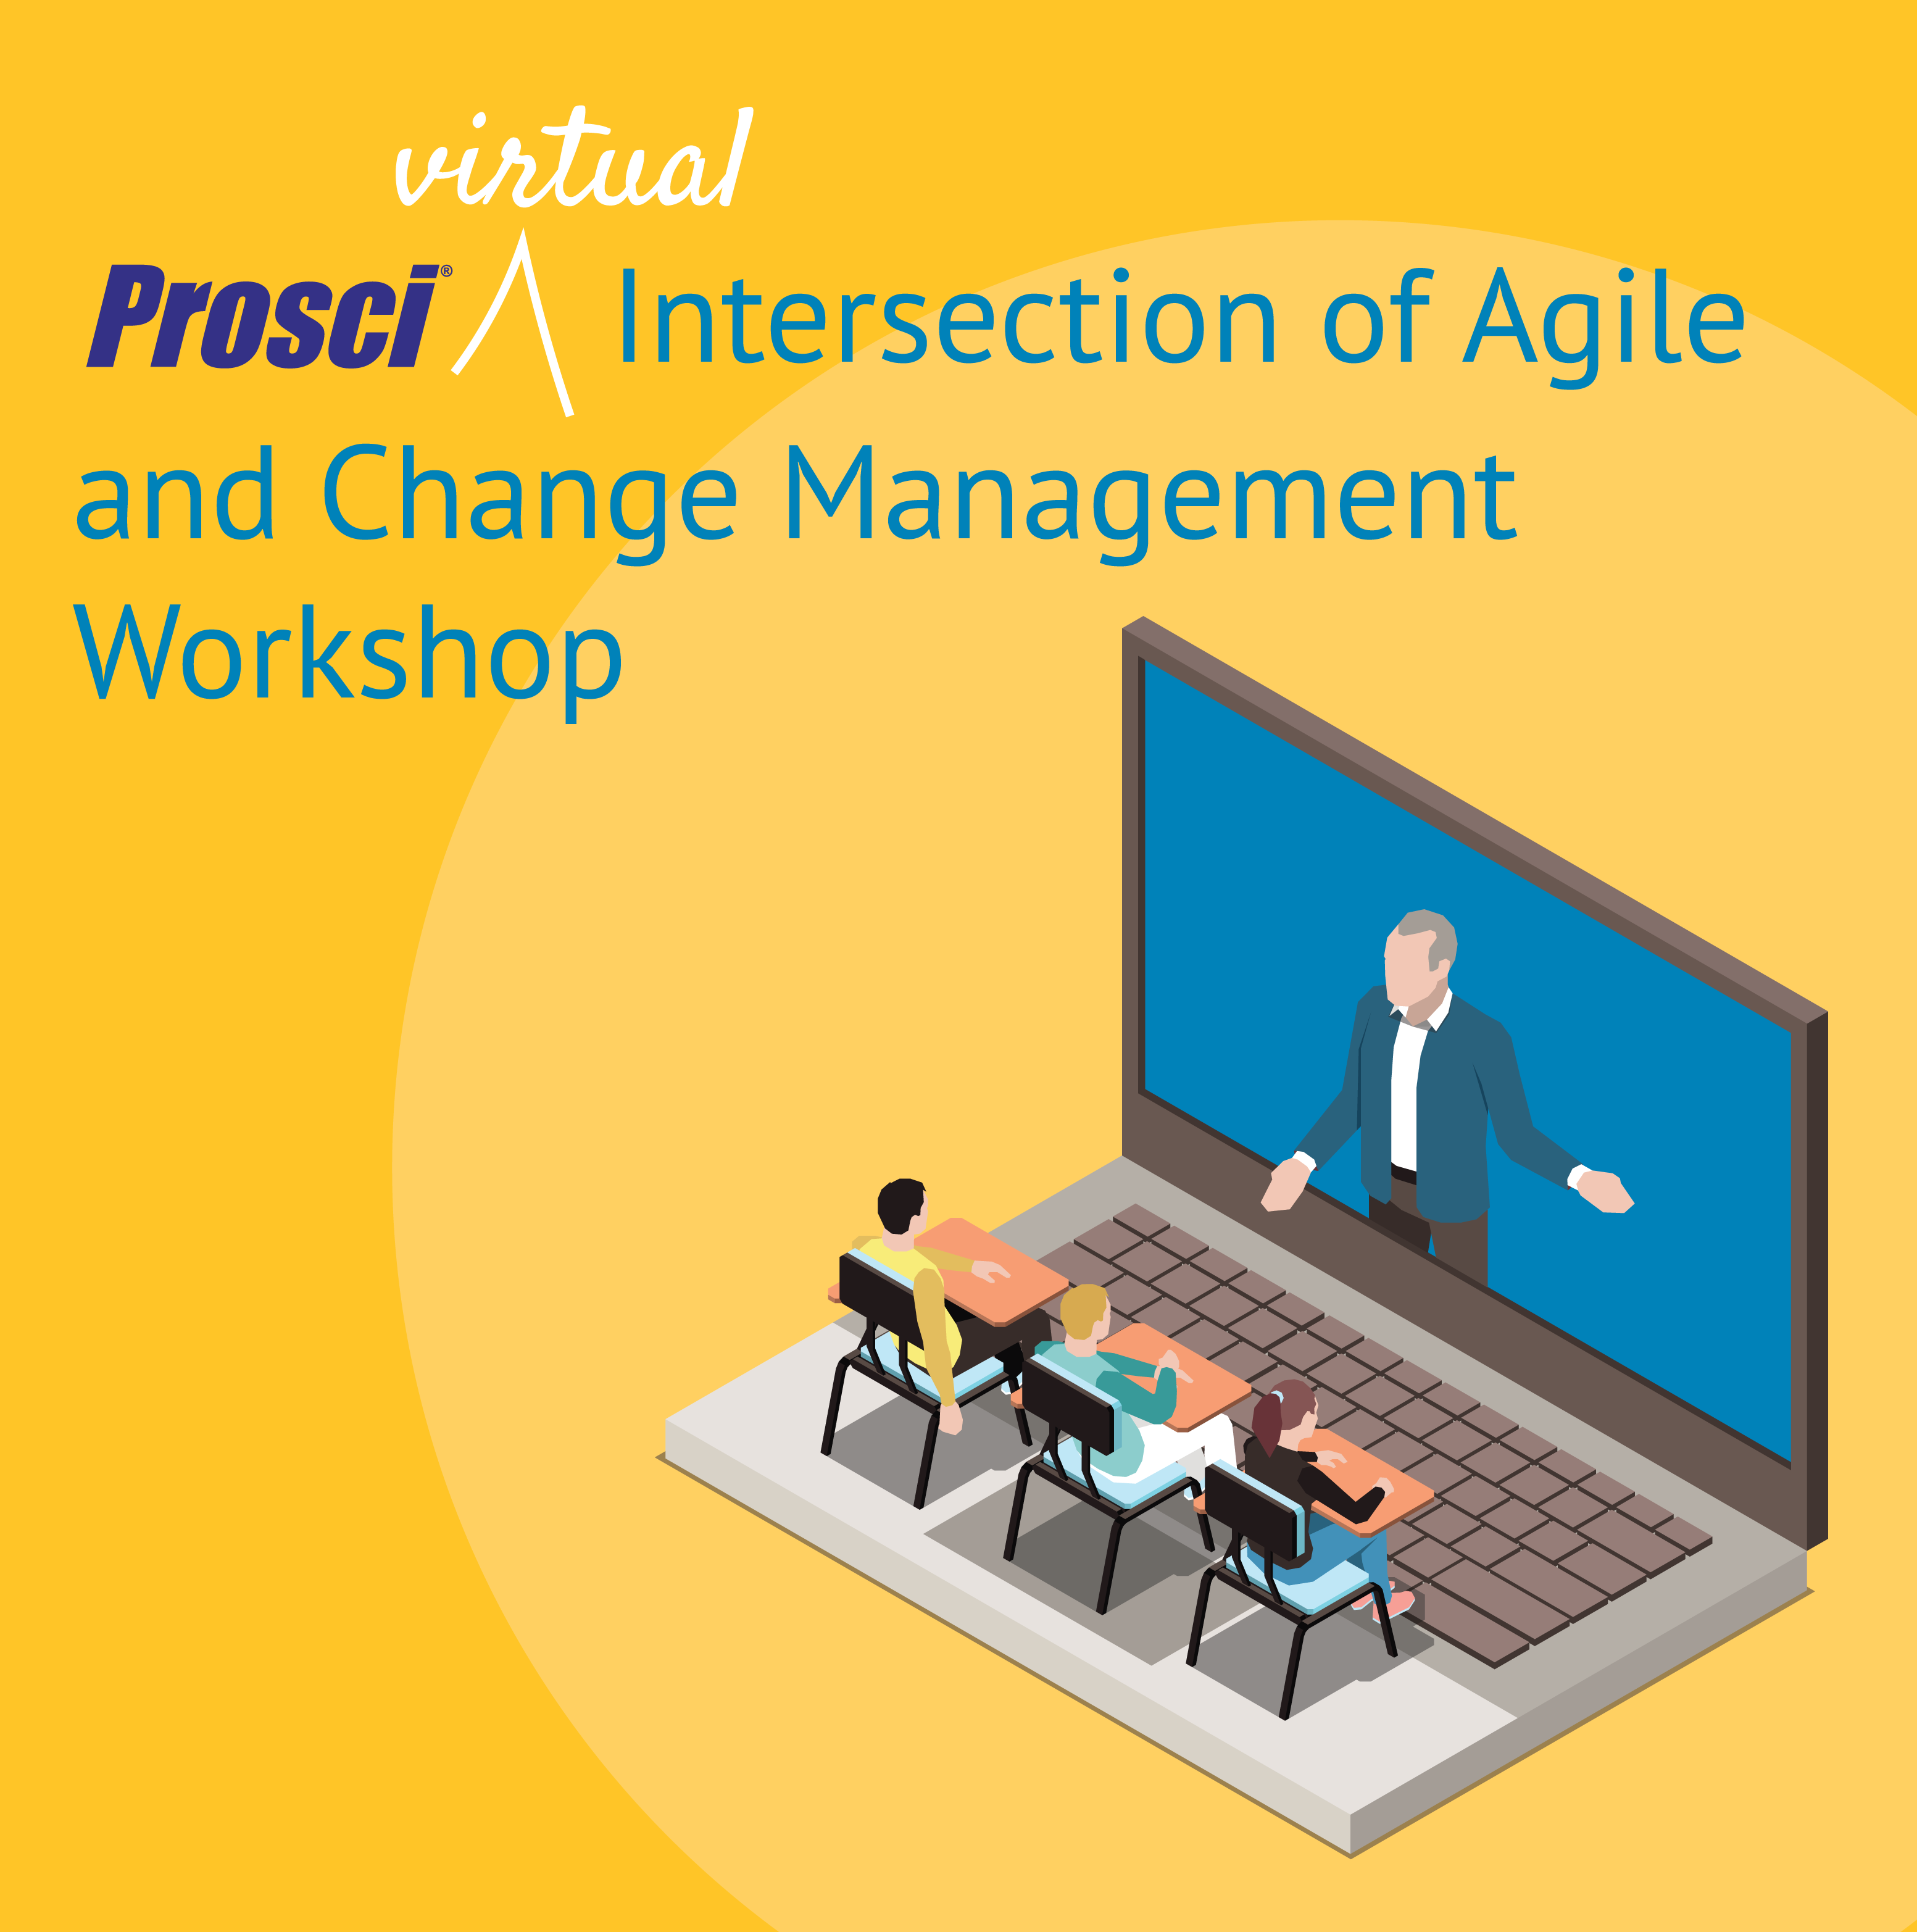 Prosci® Intersection of Agile and Change Management Workshop